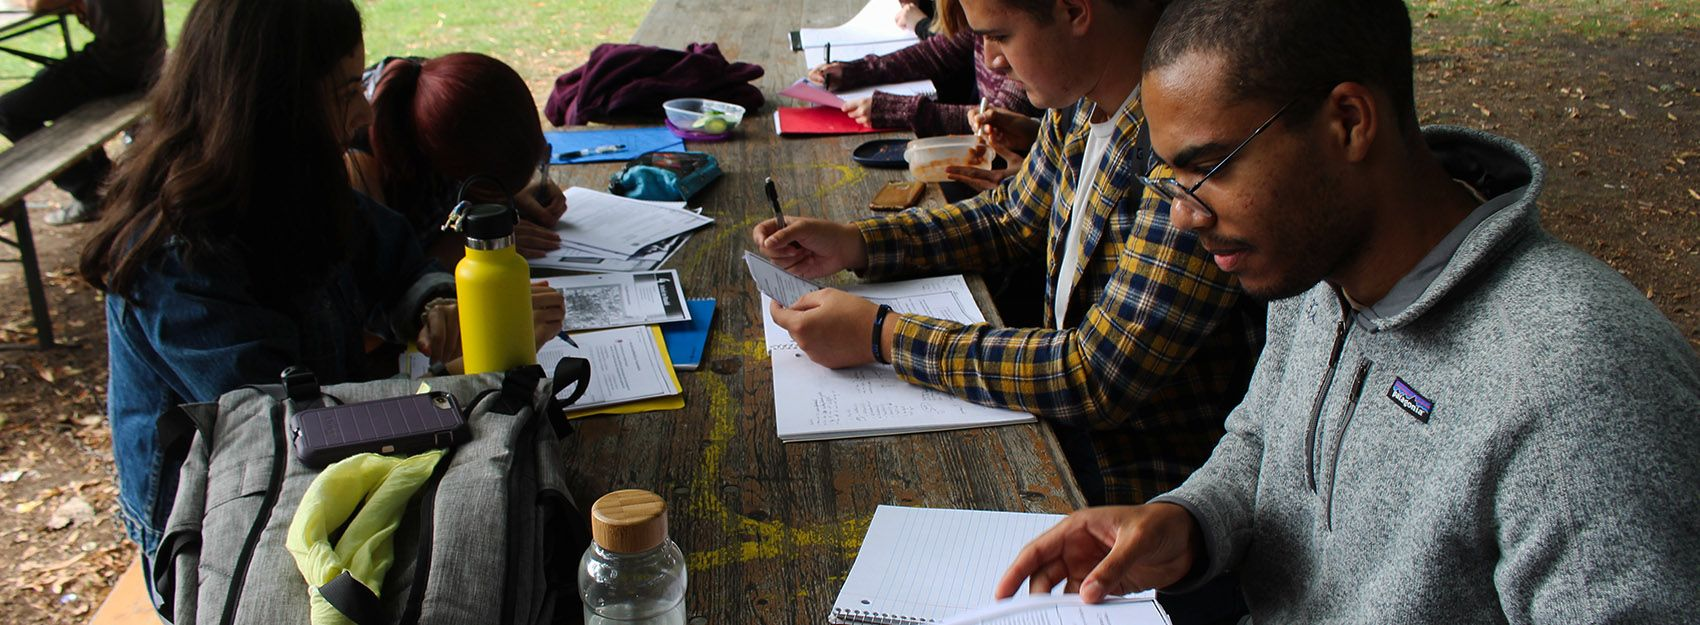 Students studying on picnic bench outside